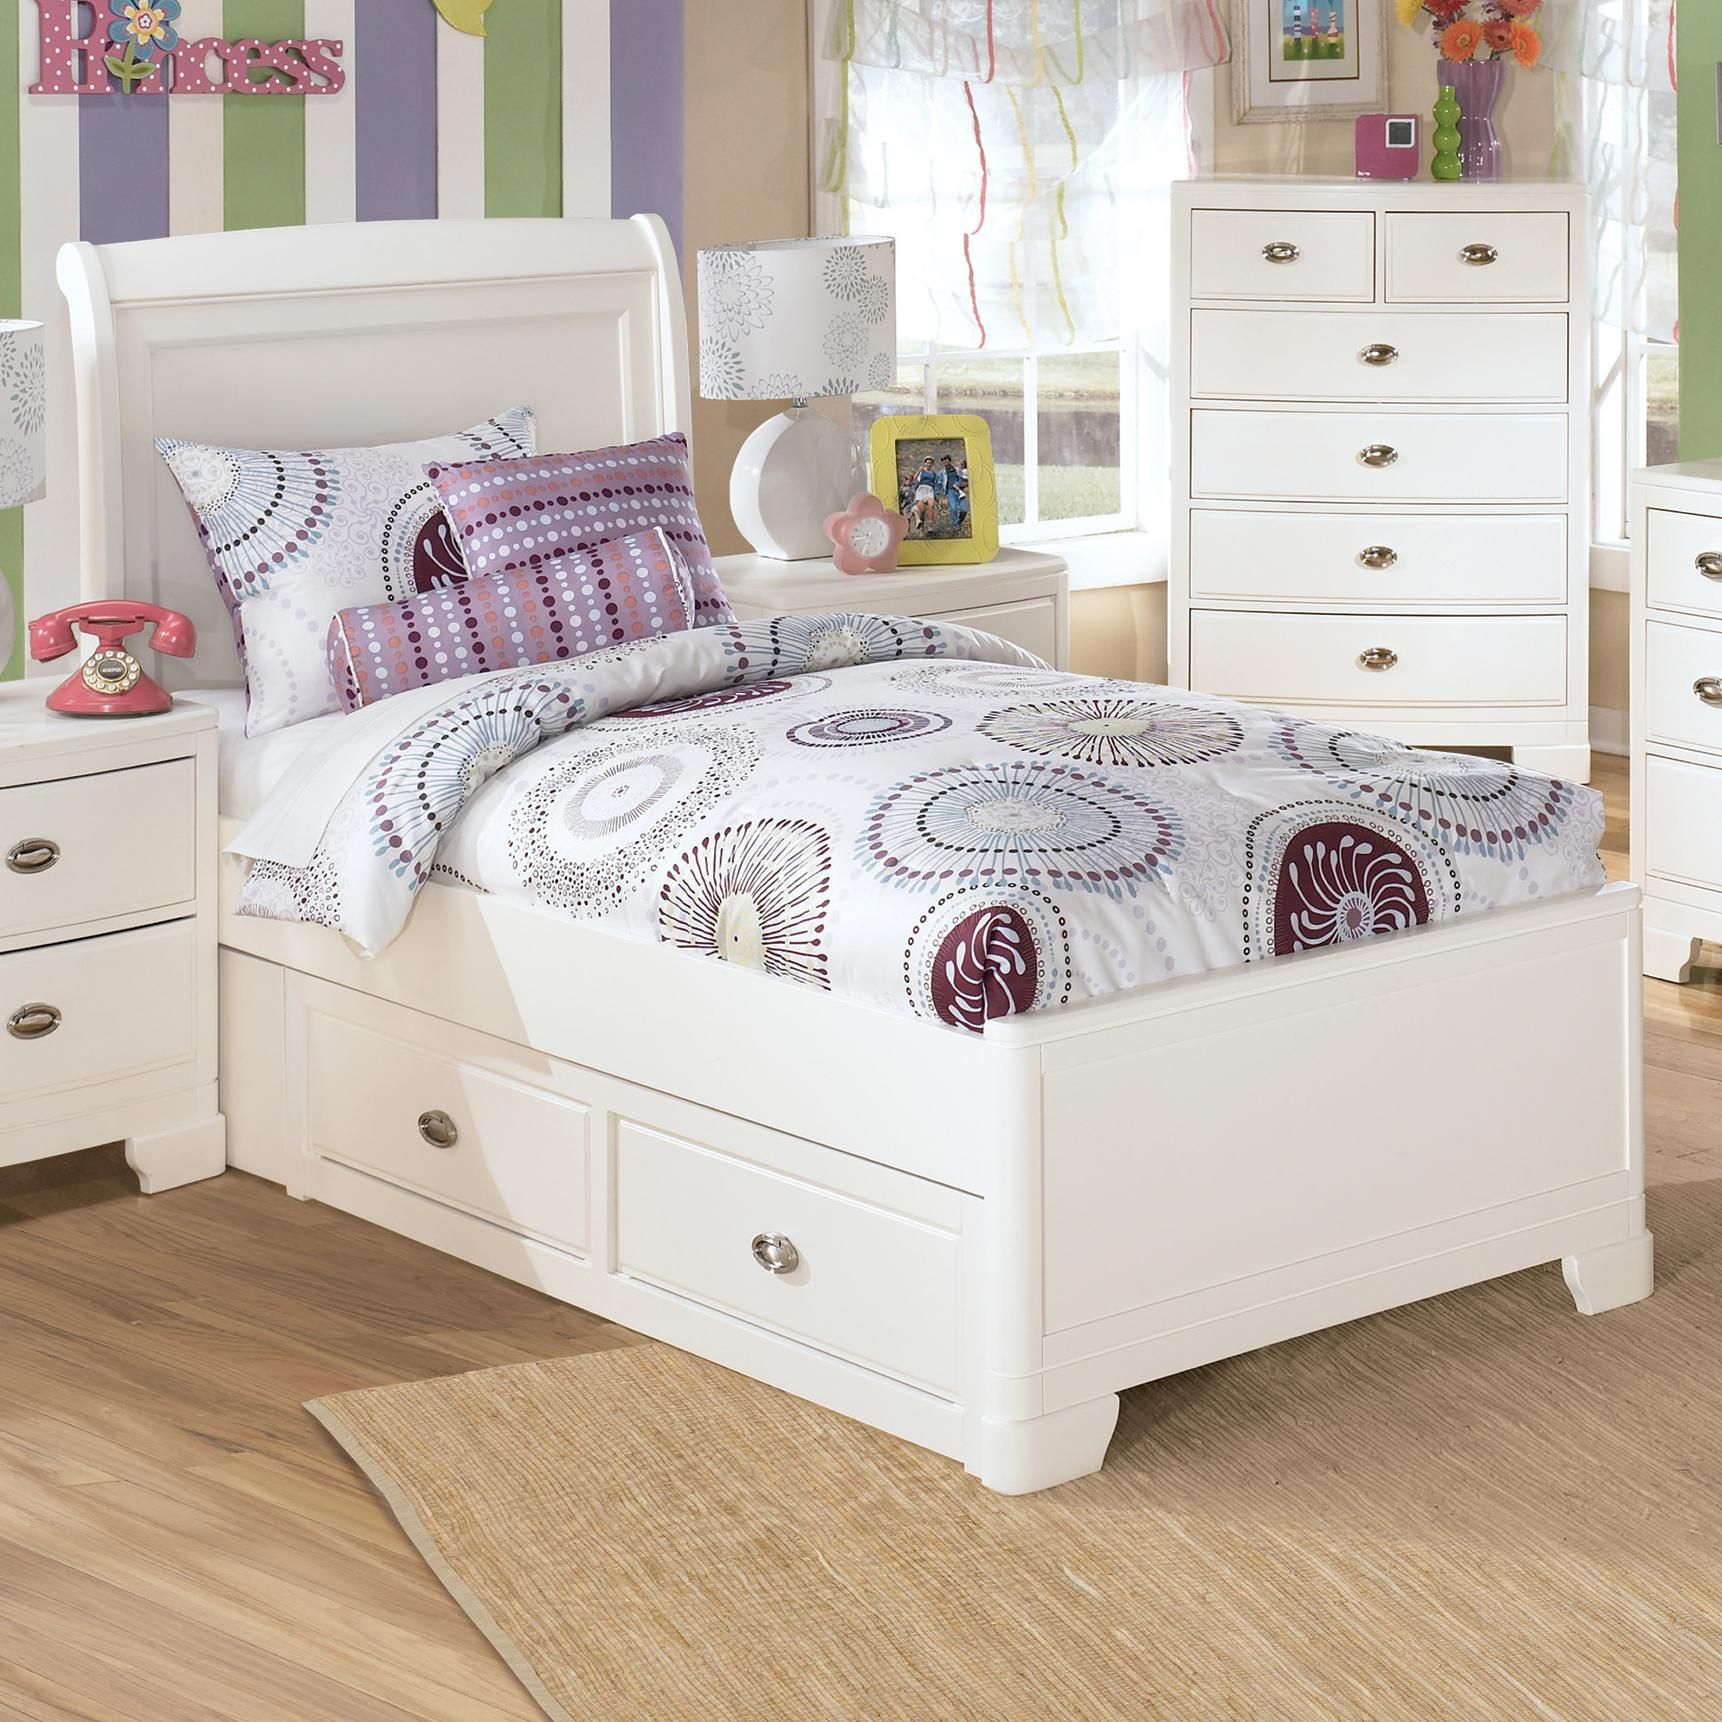 Alyn Full Bed with Sleigh Headboard & 9 Storage Drawers by